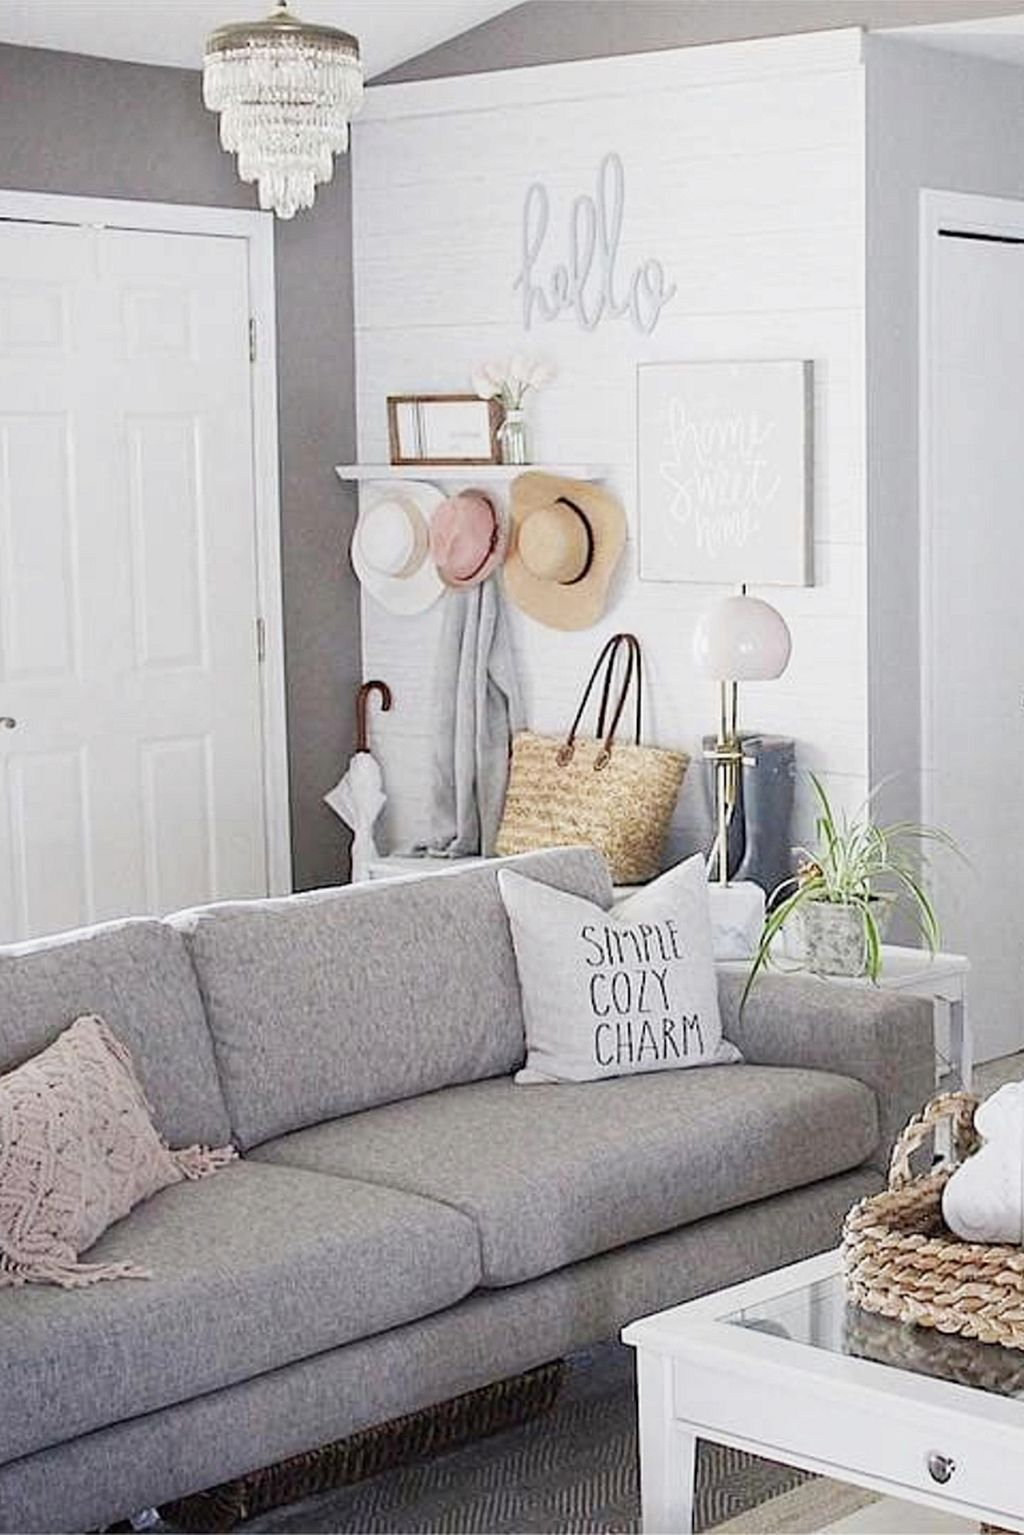 Simple diy room decorations  beautiful diy projects for home decorating you can make  decor